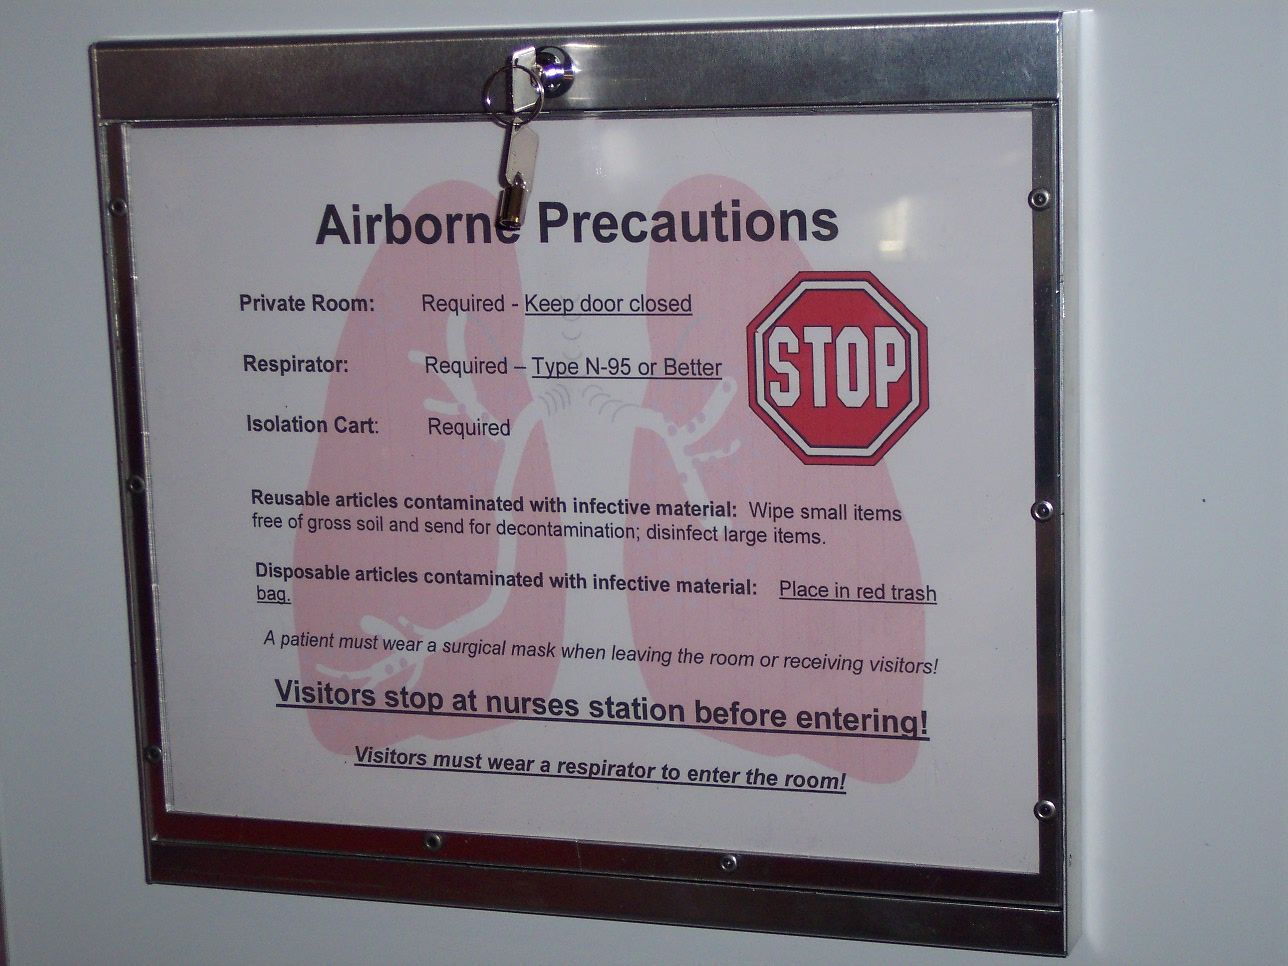 Aeromed Portable Air Purifiers Are An Effective Tool For